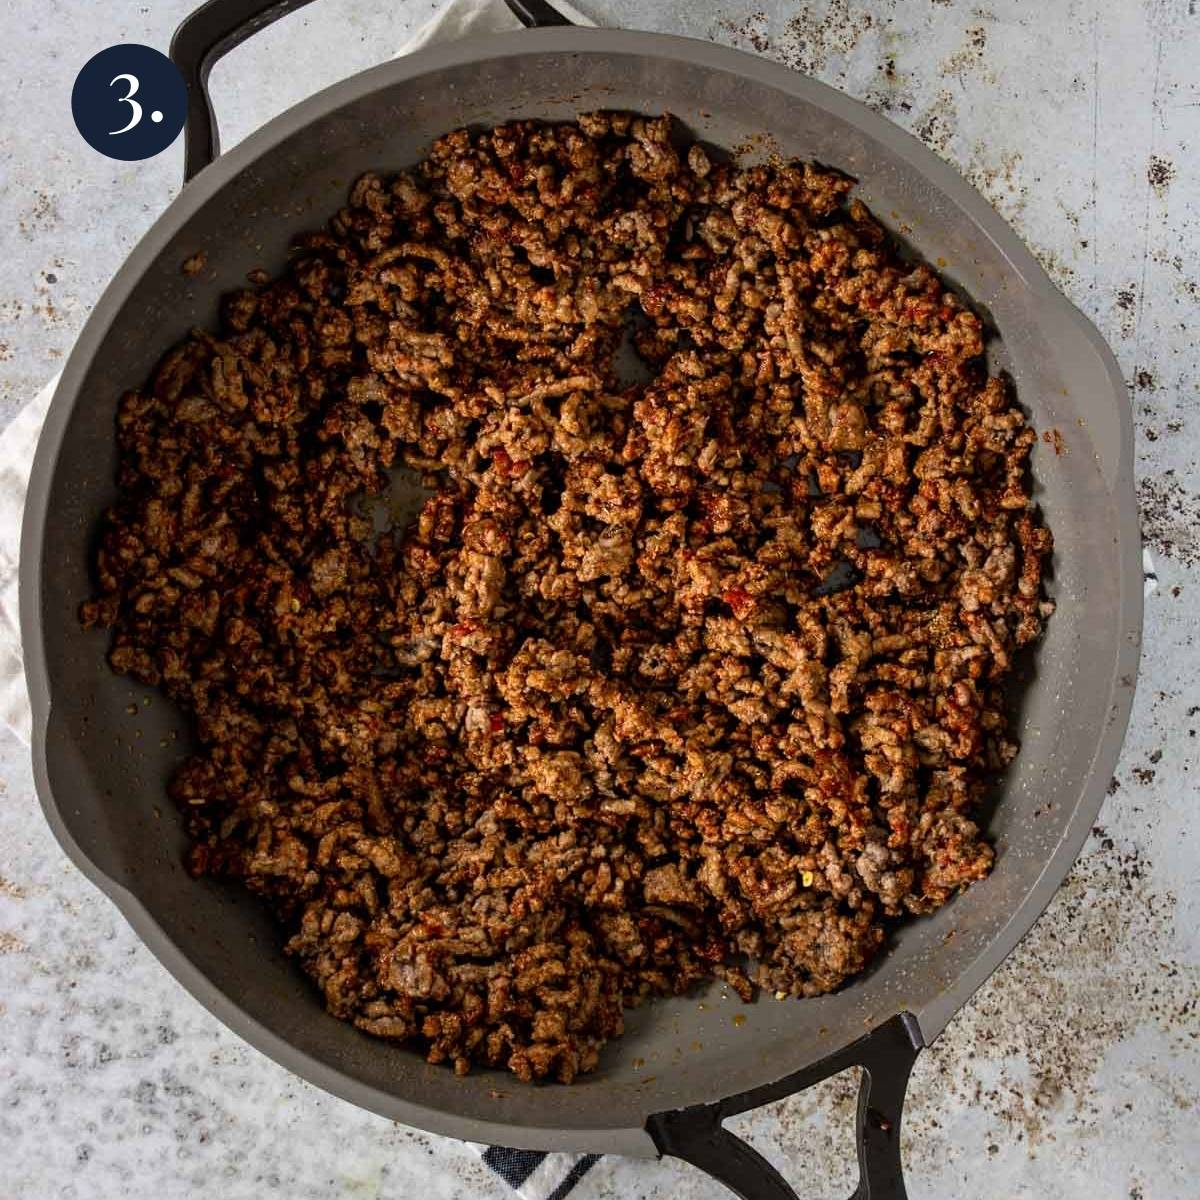 spices added to cooked ground beef